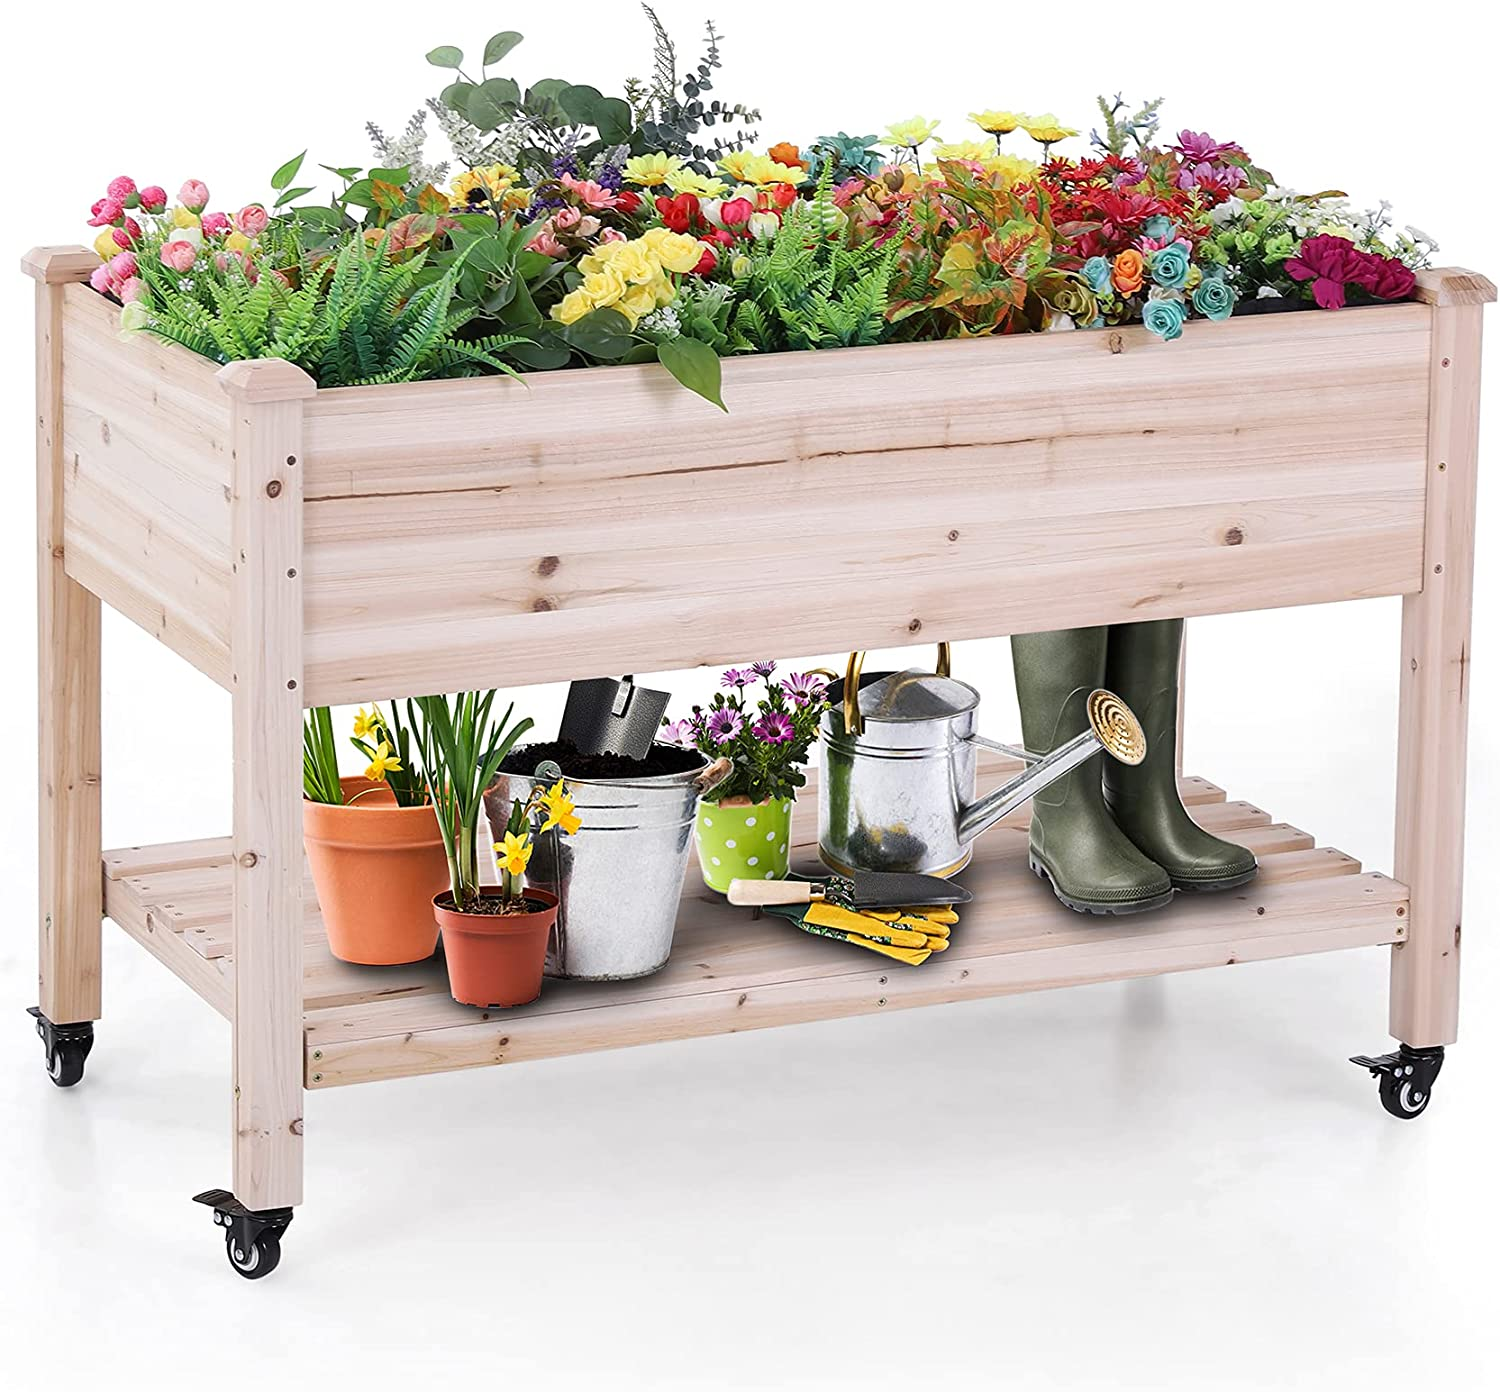 MFSTUDIO Elevated Planter Garden Bed,Outdoor Mobile Wooden Raised Box with Wheels and Lower Shelf for Patio,Backyard,Balcony